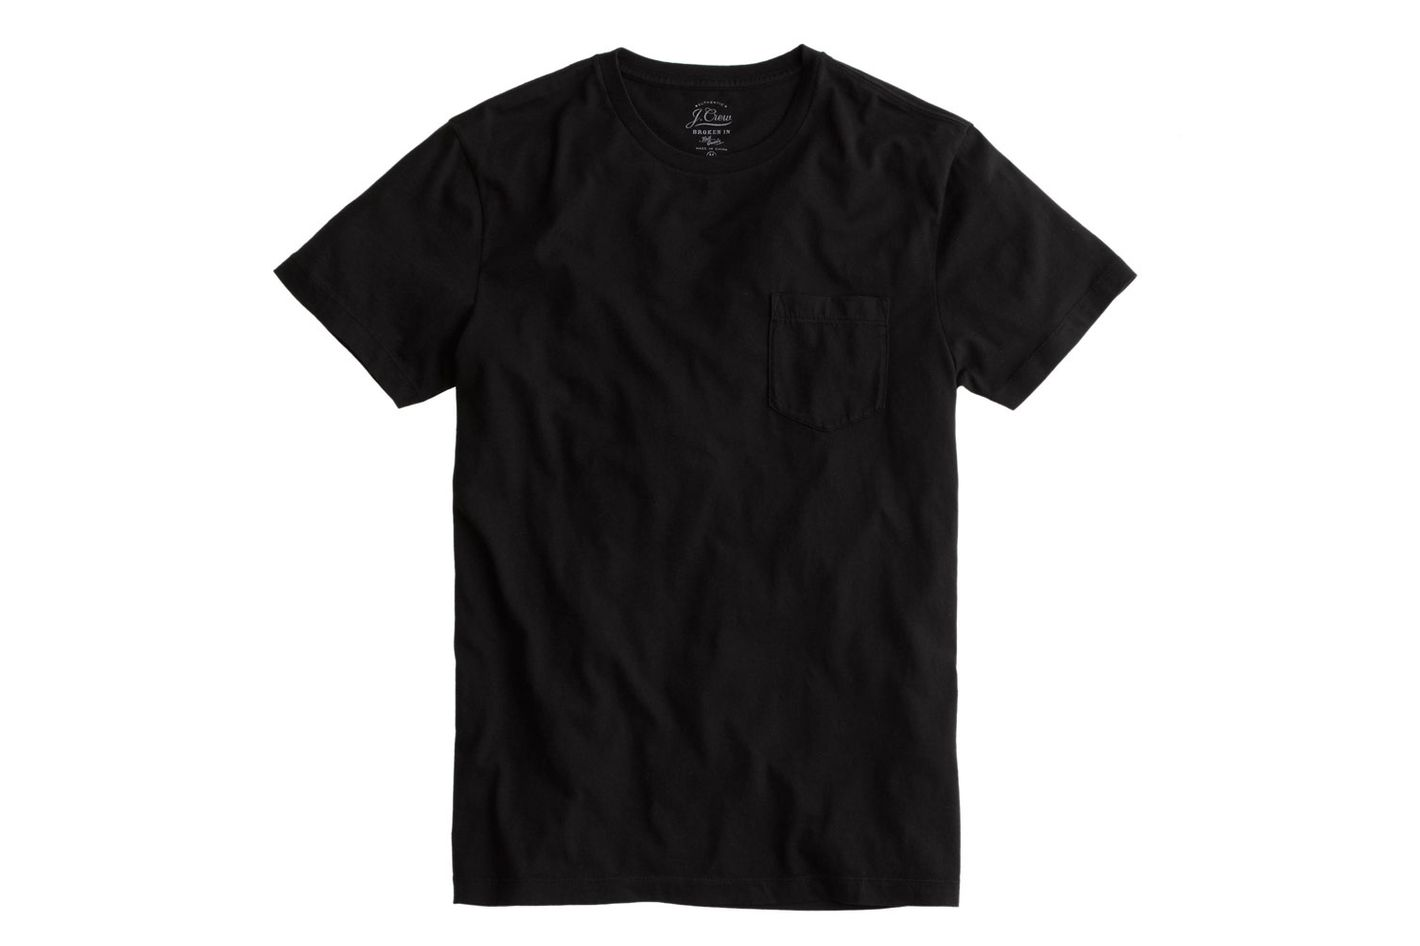 The Best Black T-Shirt for Men According to Nick Wooster